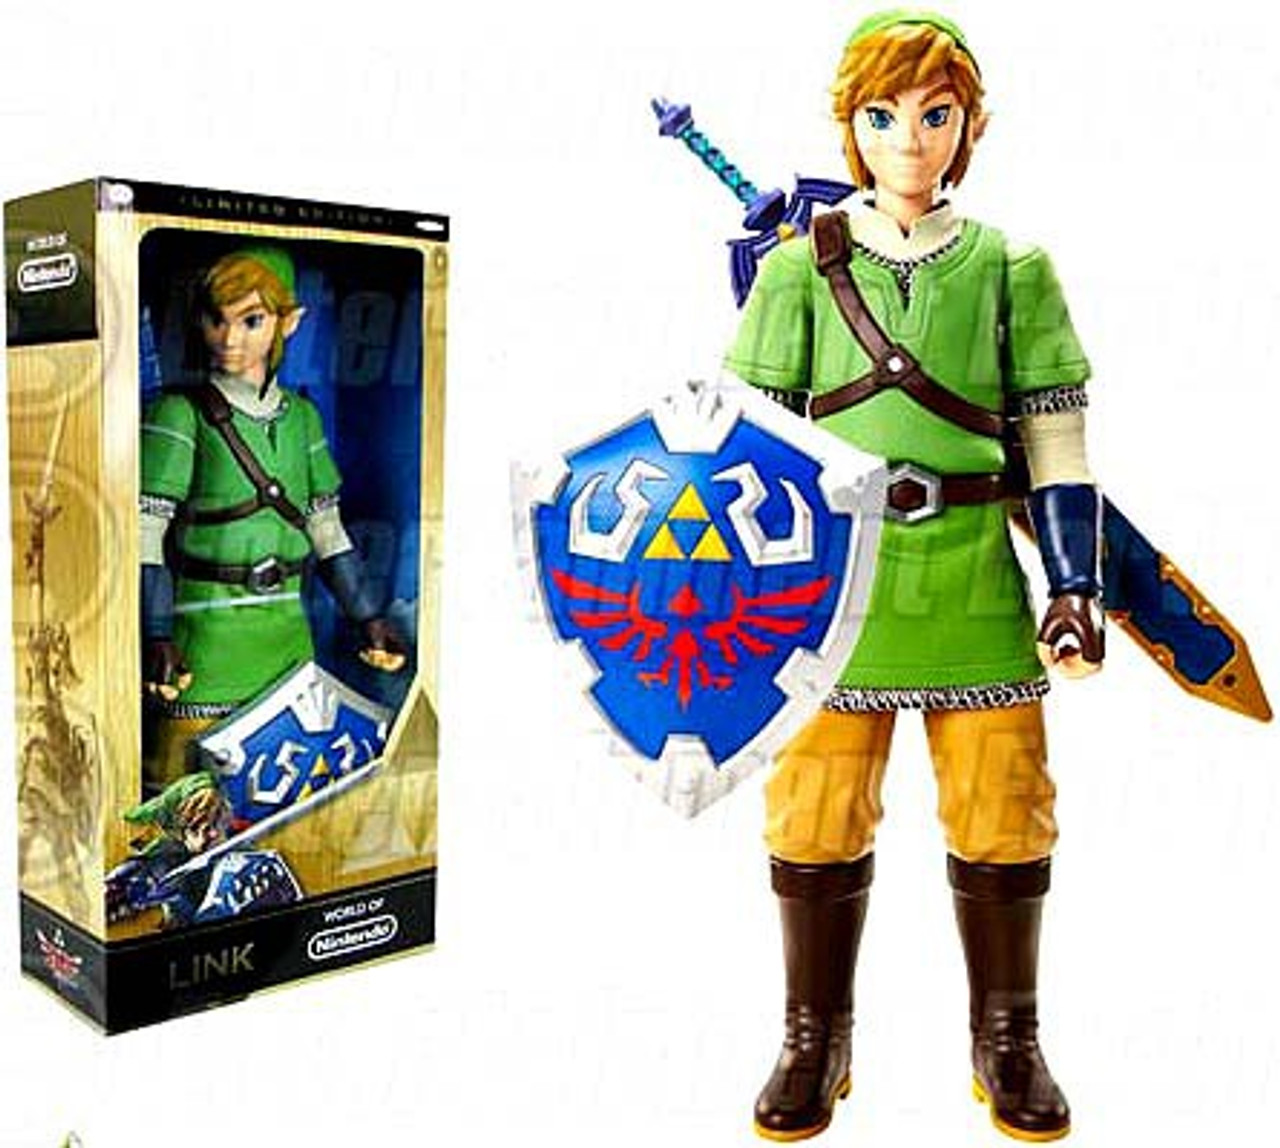 Skyward Sword Master Sword PVC Figure Collection Toy in Box The Legend of Zelda